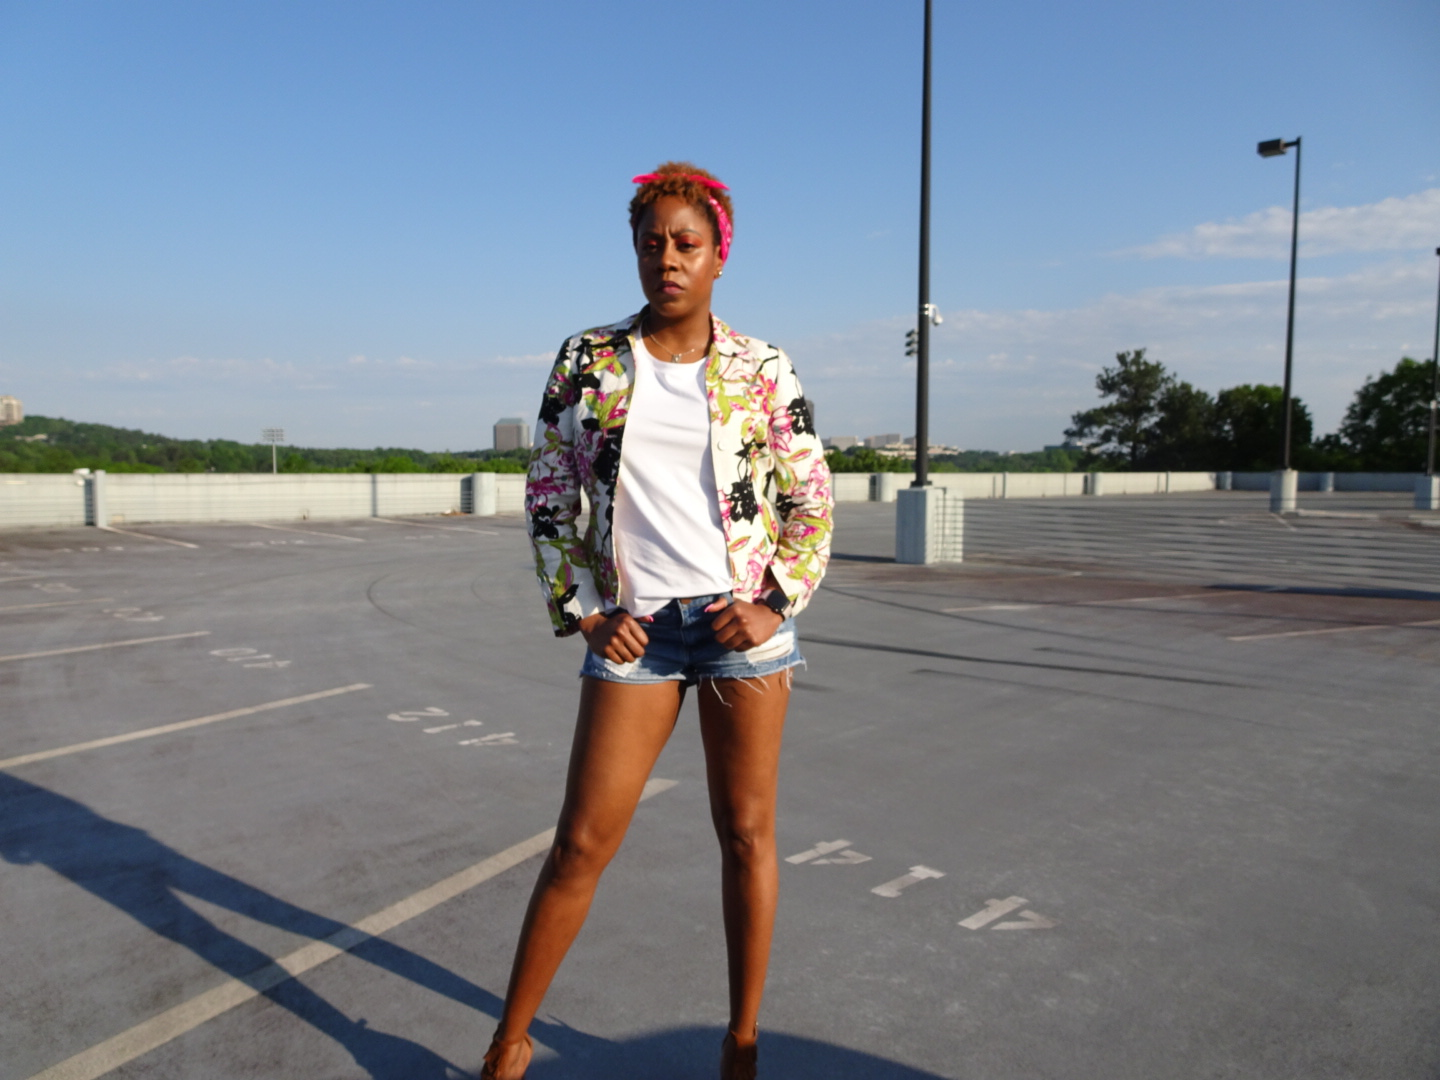 Jacket: Thrift; Shirt: Universal Standard; Shorts: Boohoo; Shoes: BCBG Generation